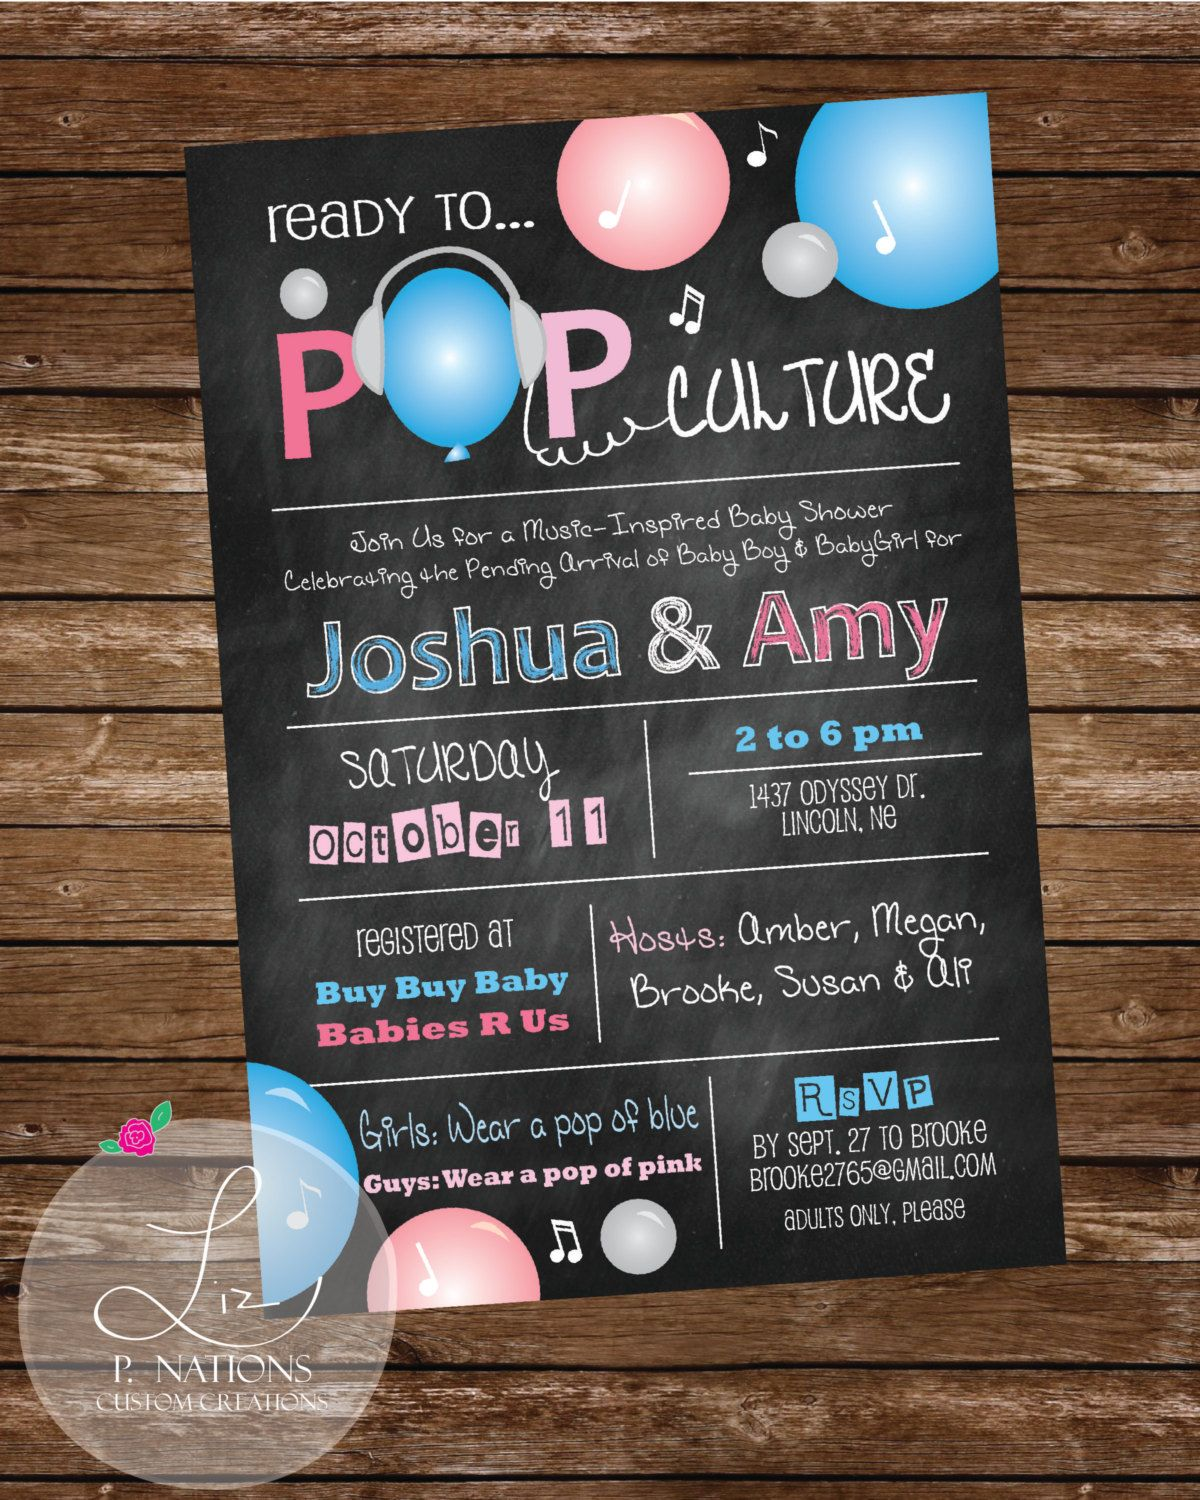 Shower invitations Ready to Pop Culture